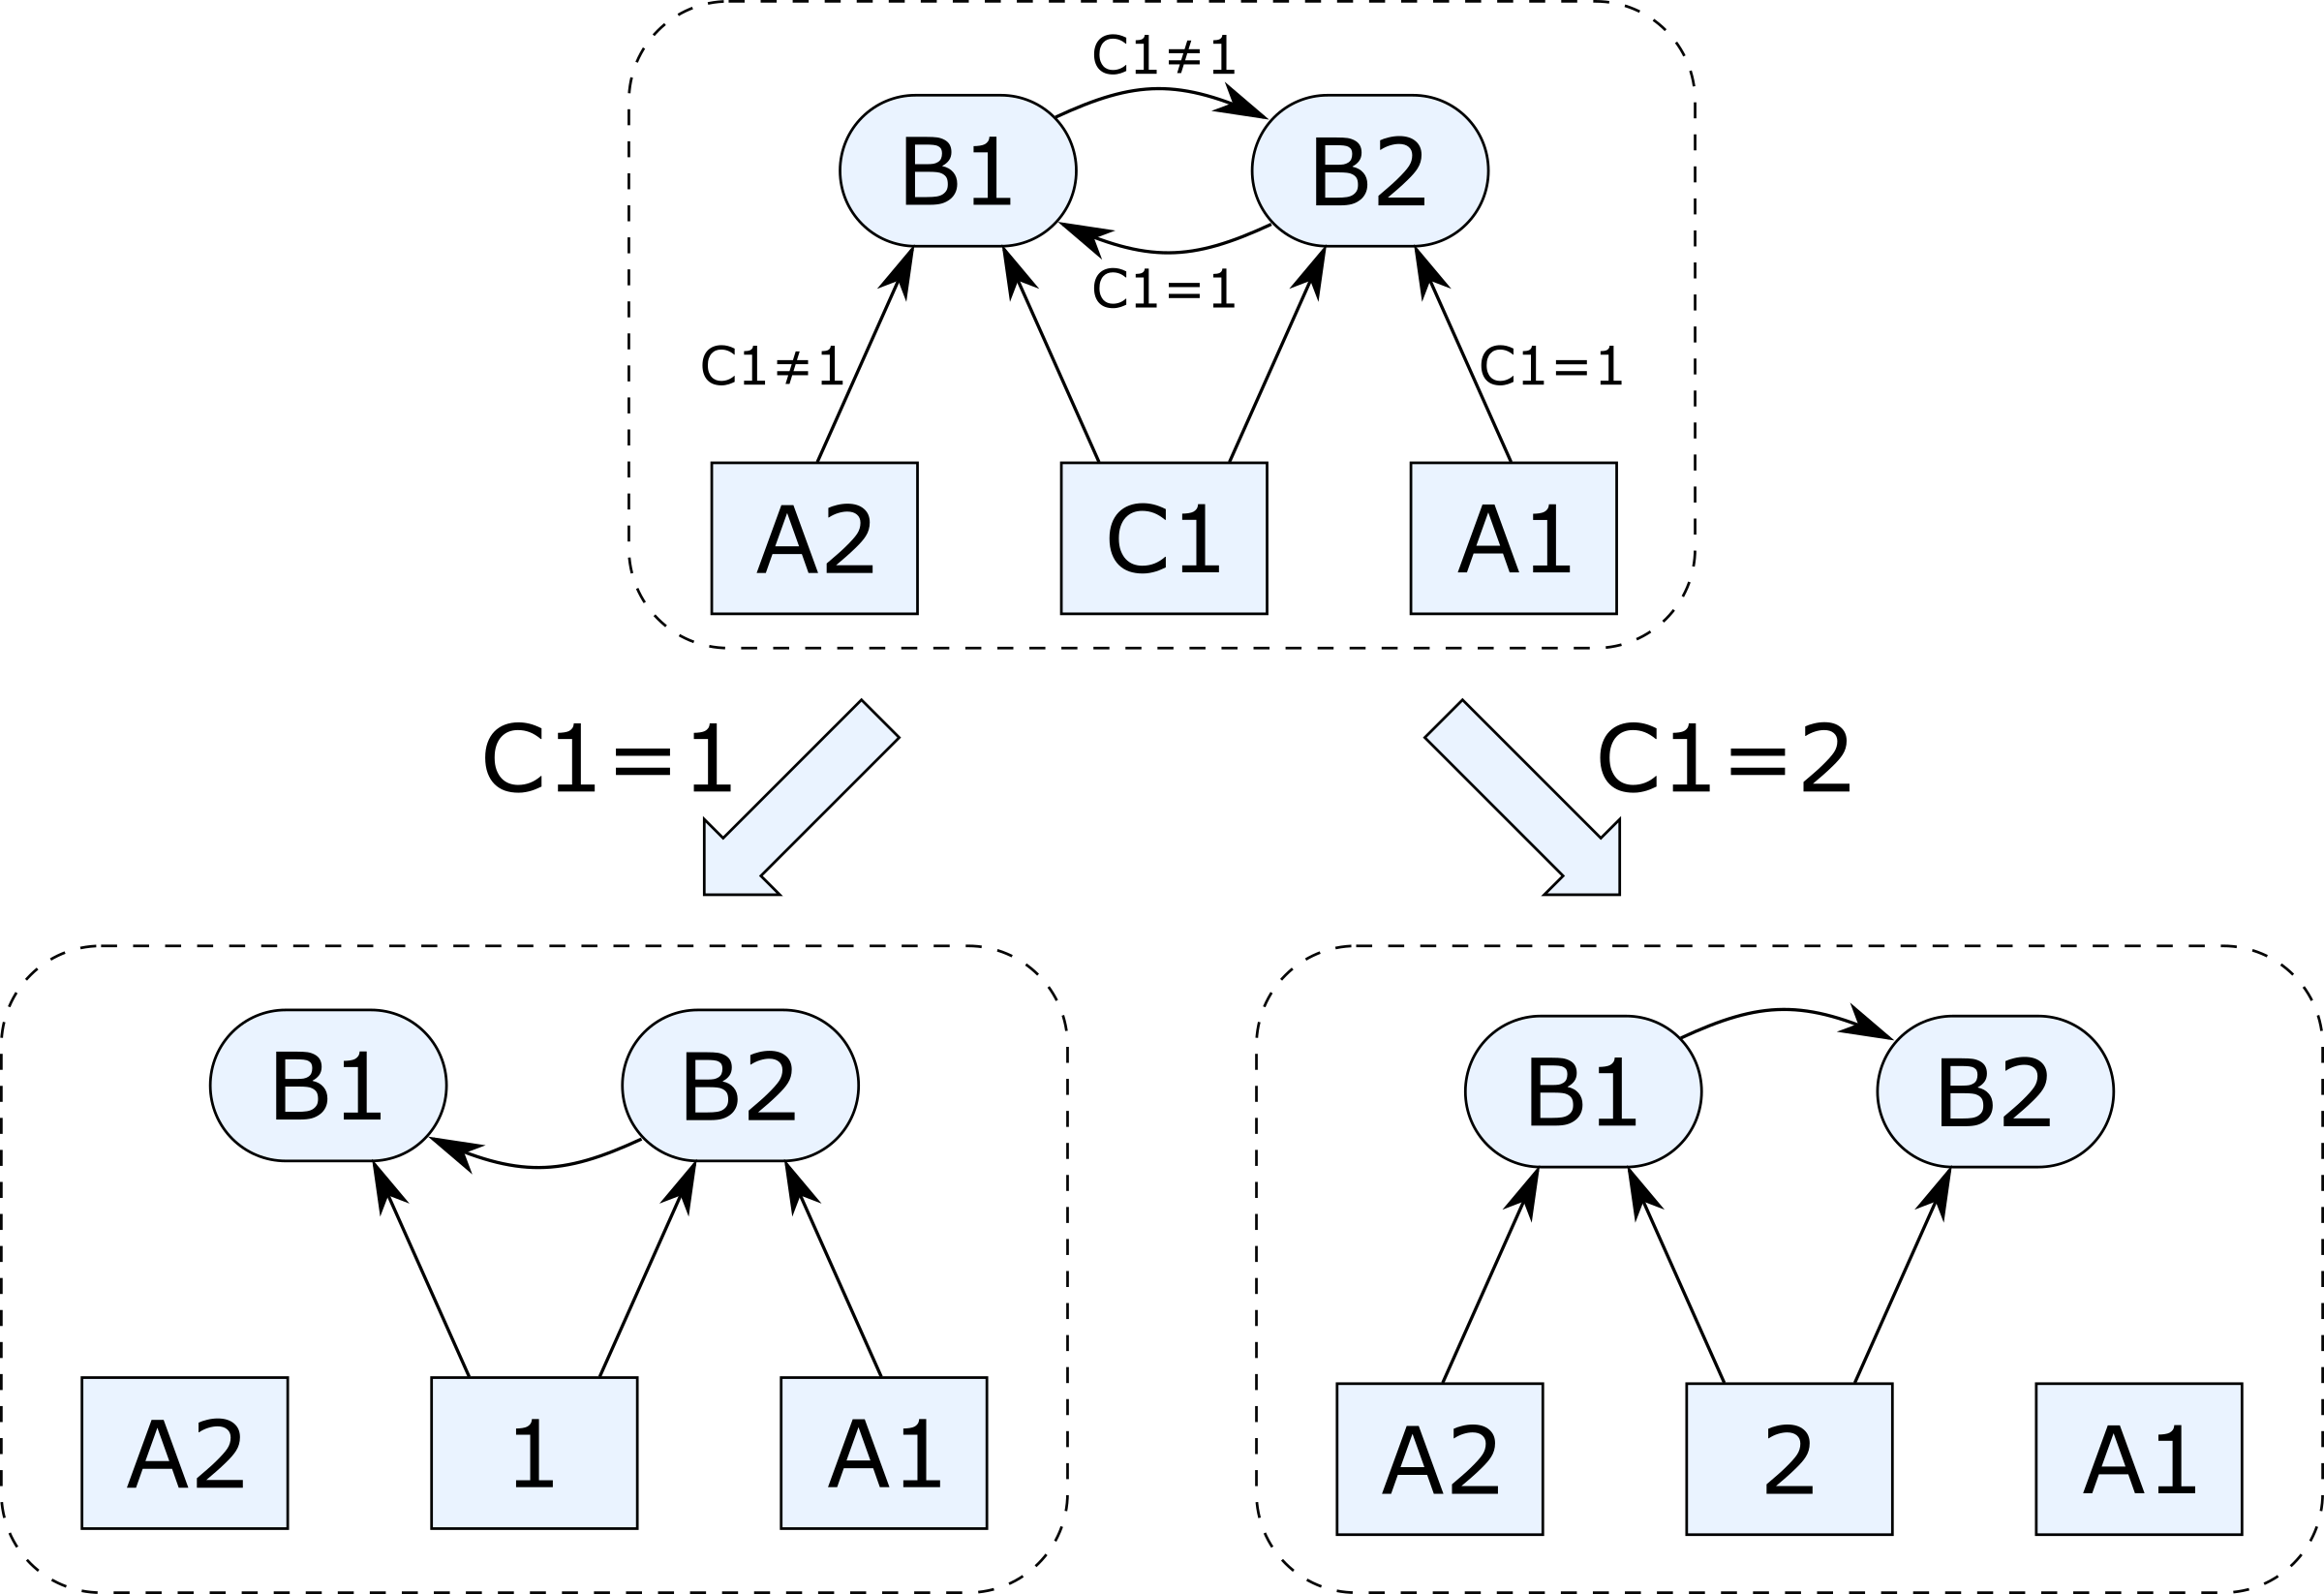 Cyclic dependencies example